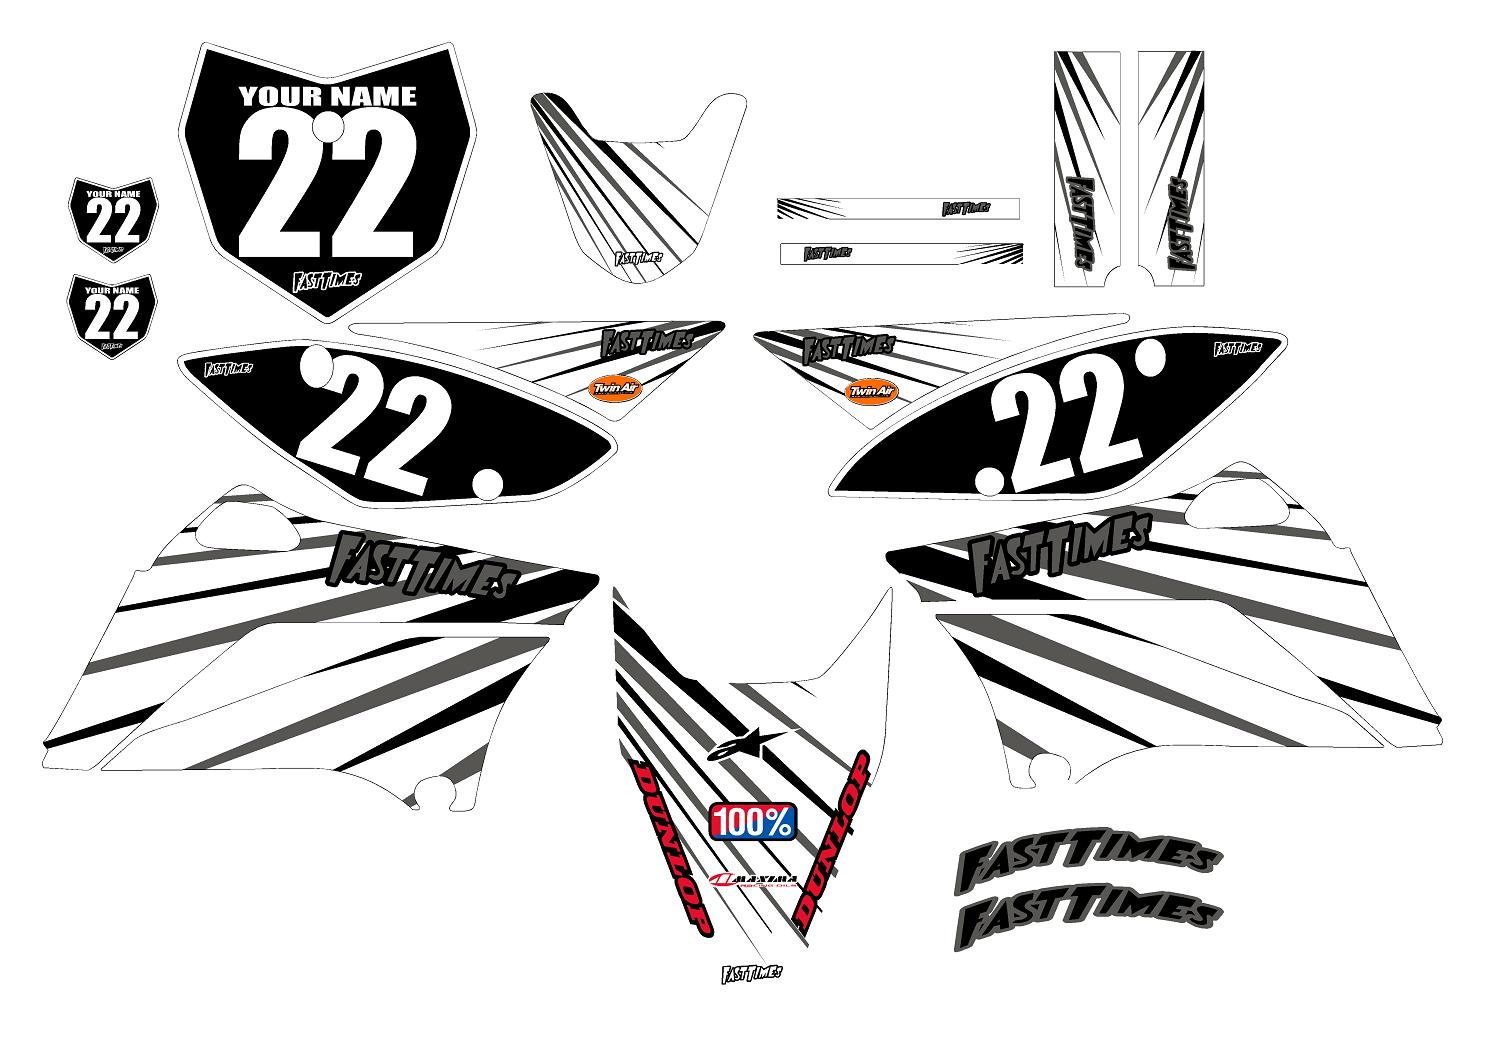 Suzuki Vonzipper Number Plates likewise Trust further Coloriage Casque Moto Cross furthermore 162272525636 as well Smooth Pokemon Coloring Sheets coloring Pages Star Coloring Pages Stars For Kids Coloring Pages Stars Coloring Pages Stars For Kids. on ktm background